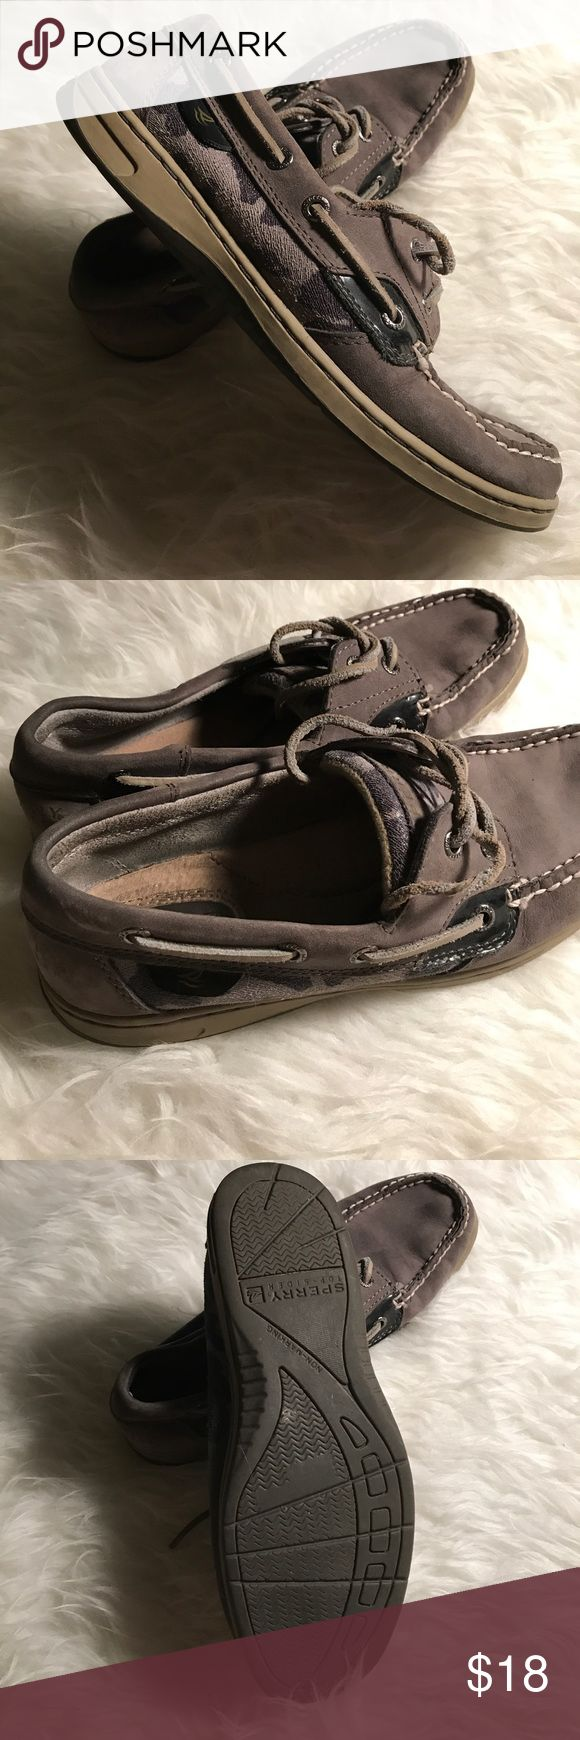 Gray Sperry Boat Shoes Practically new gray Sperry boat shoes! Sperry Top-Sider Shoes Flats & Loafers